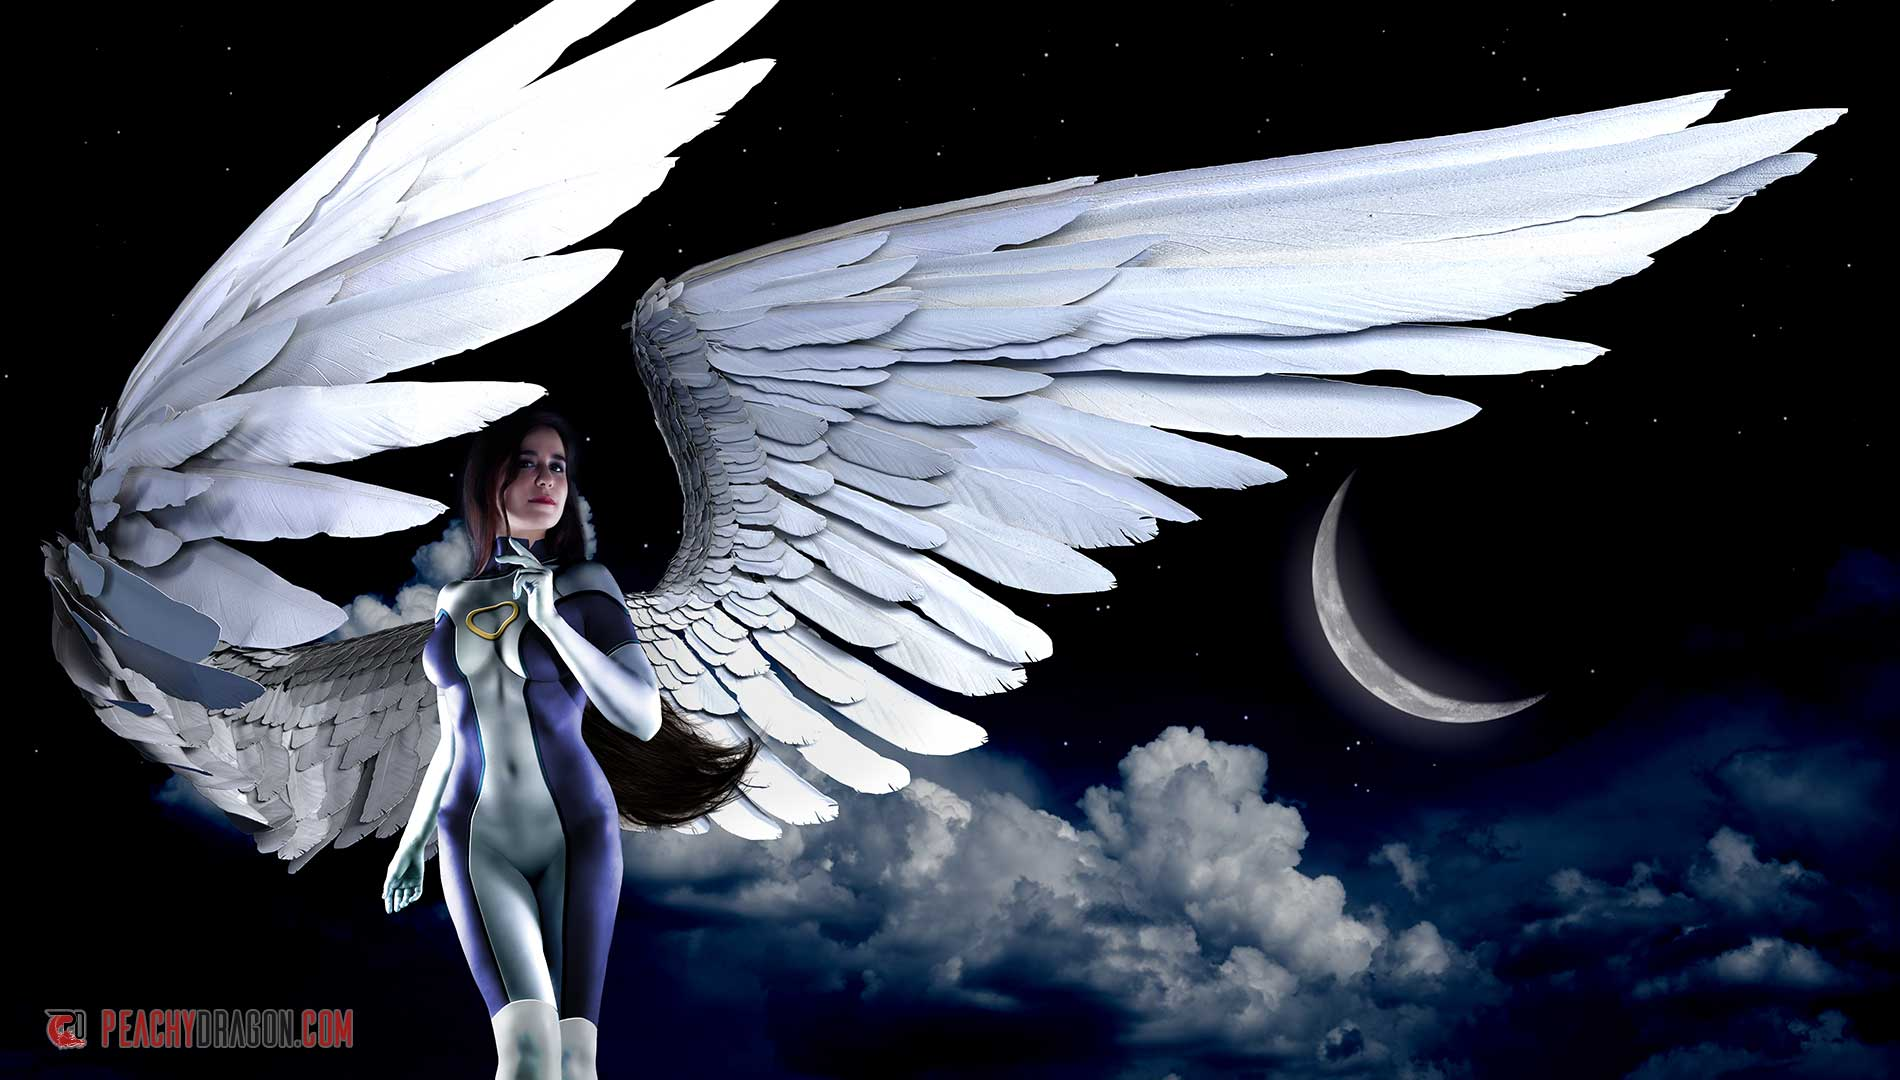 Fantasy winged photograph - Archangel